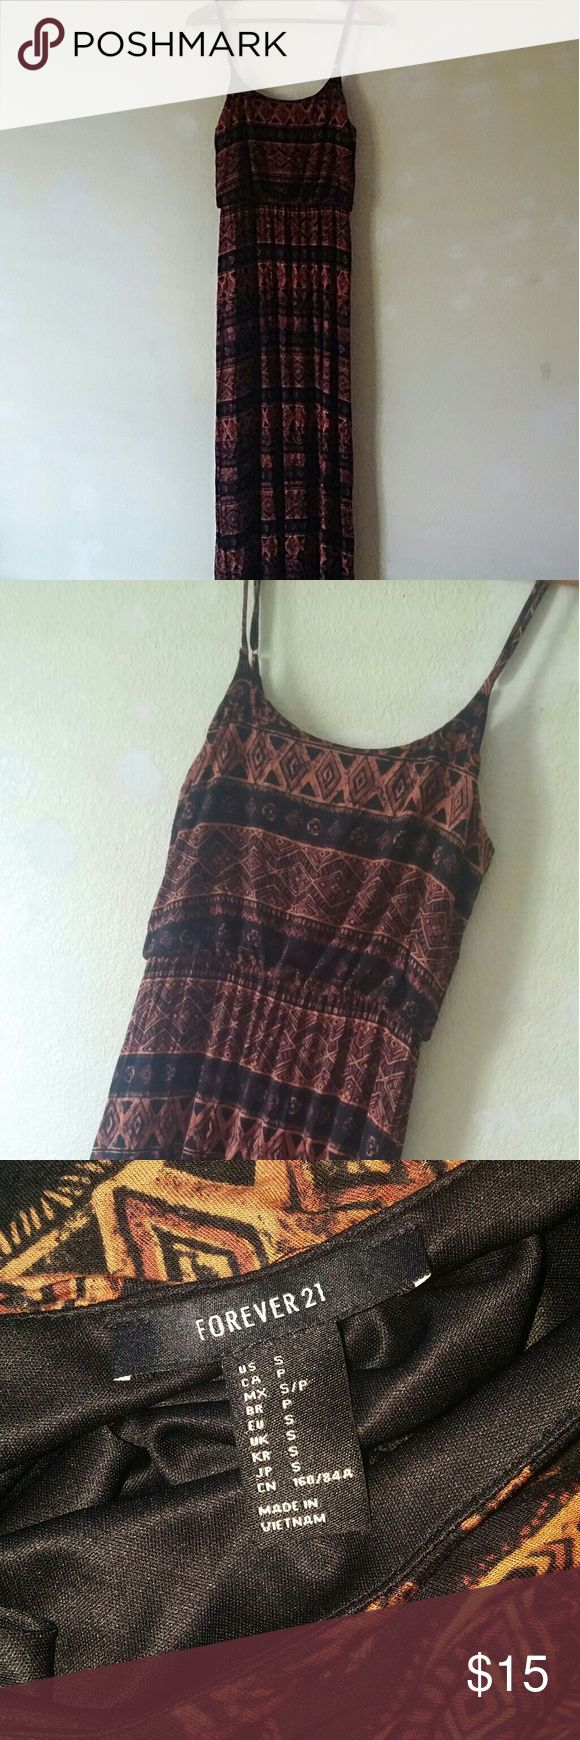 NWOT Forever 21 boho tribal aztec maxi dress Small Price is FIRM!   Forever 21 tribal printed maxi dress!  Never worn. Like new.  Underarm-underarm: 17 in.  Waist: 12.5 in., stretches up to 18 in. Length: 55  ~Free small gift included~ Forever 21 Dresses Maxi